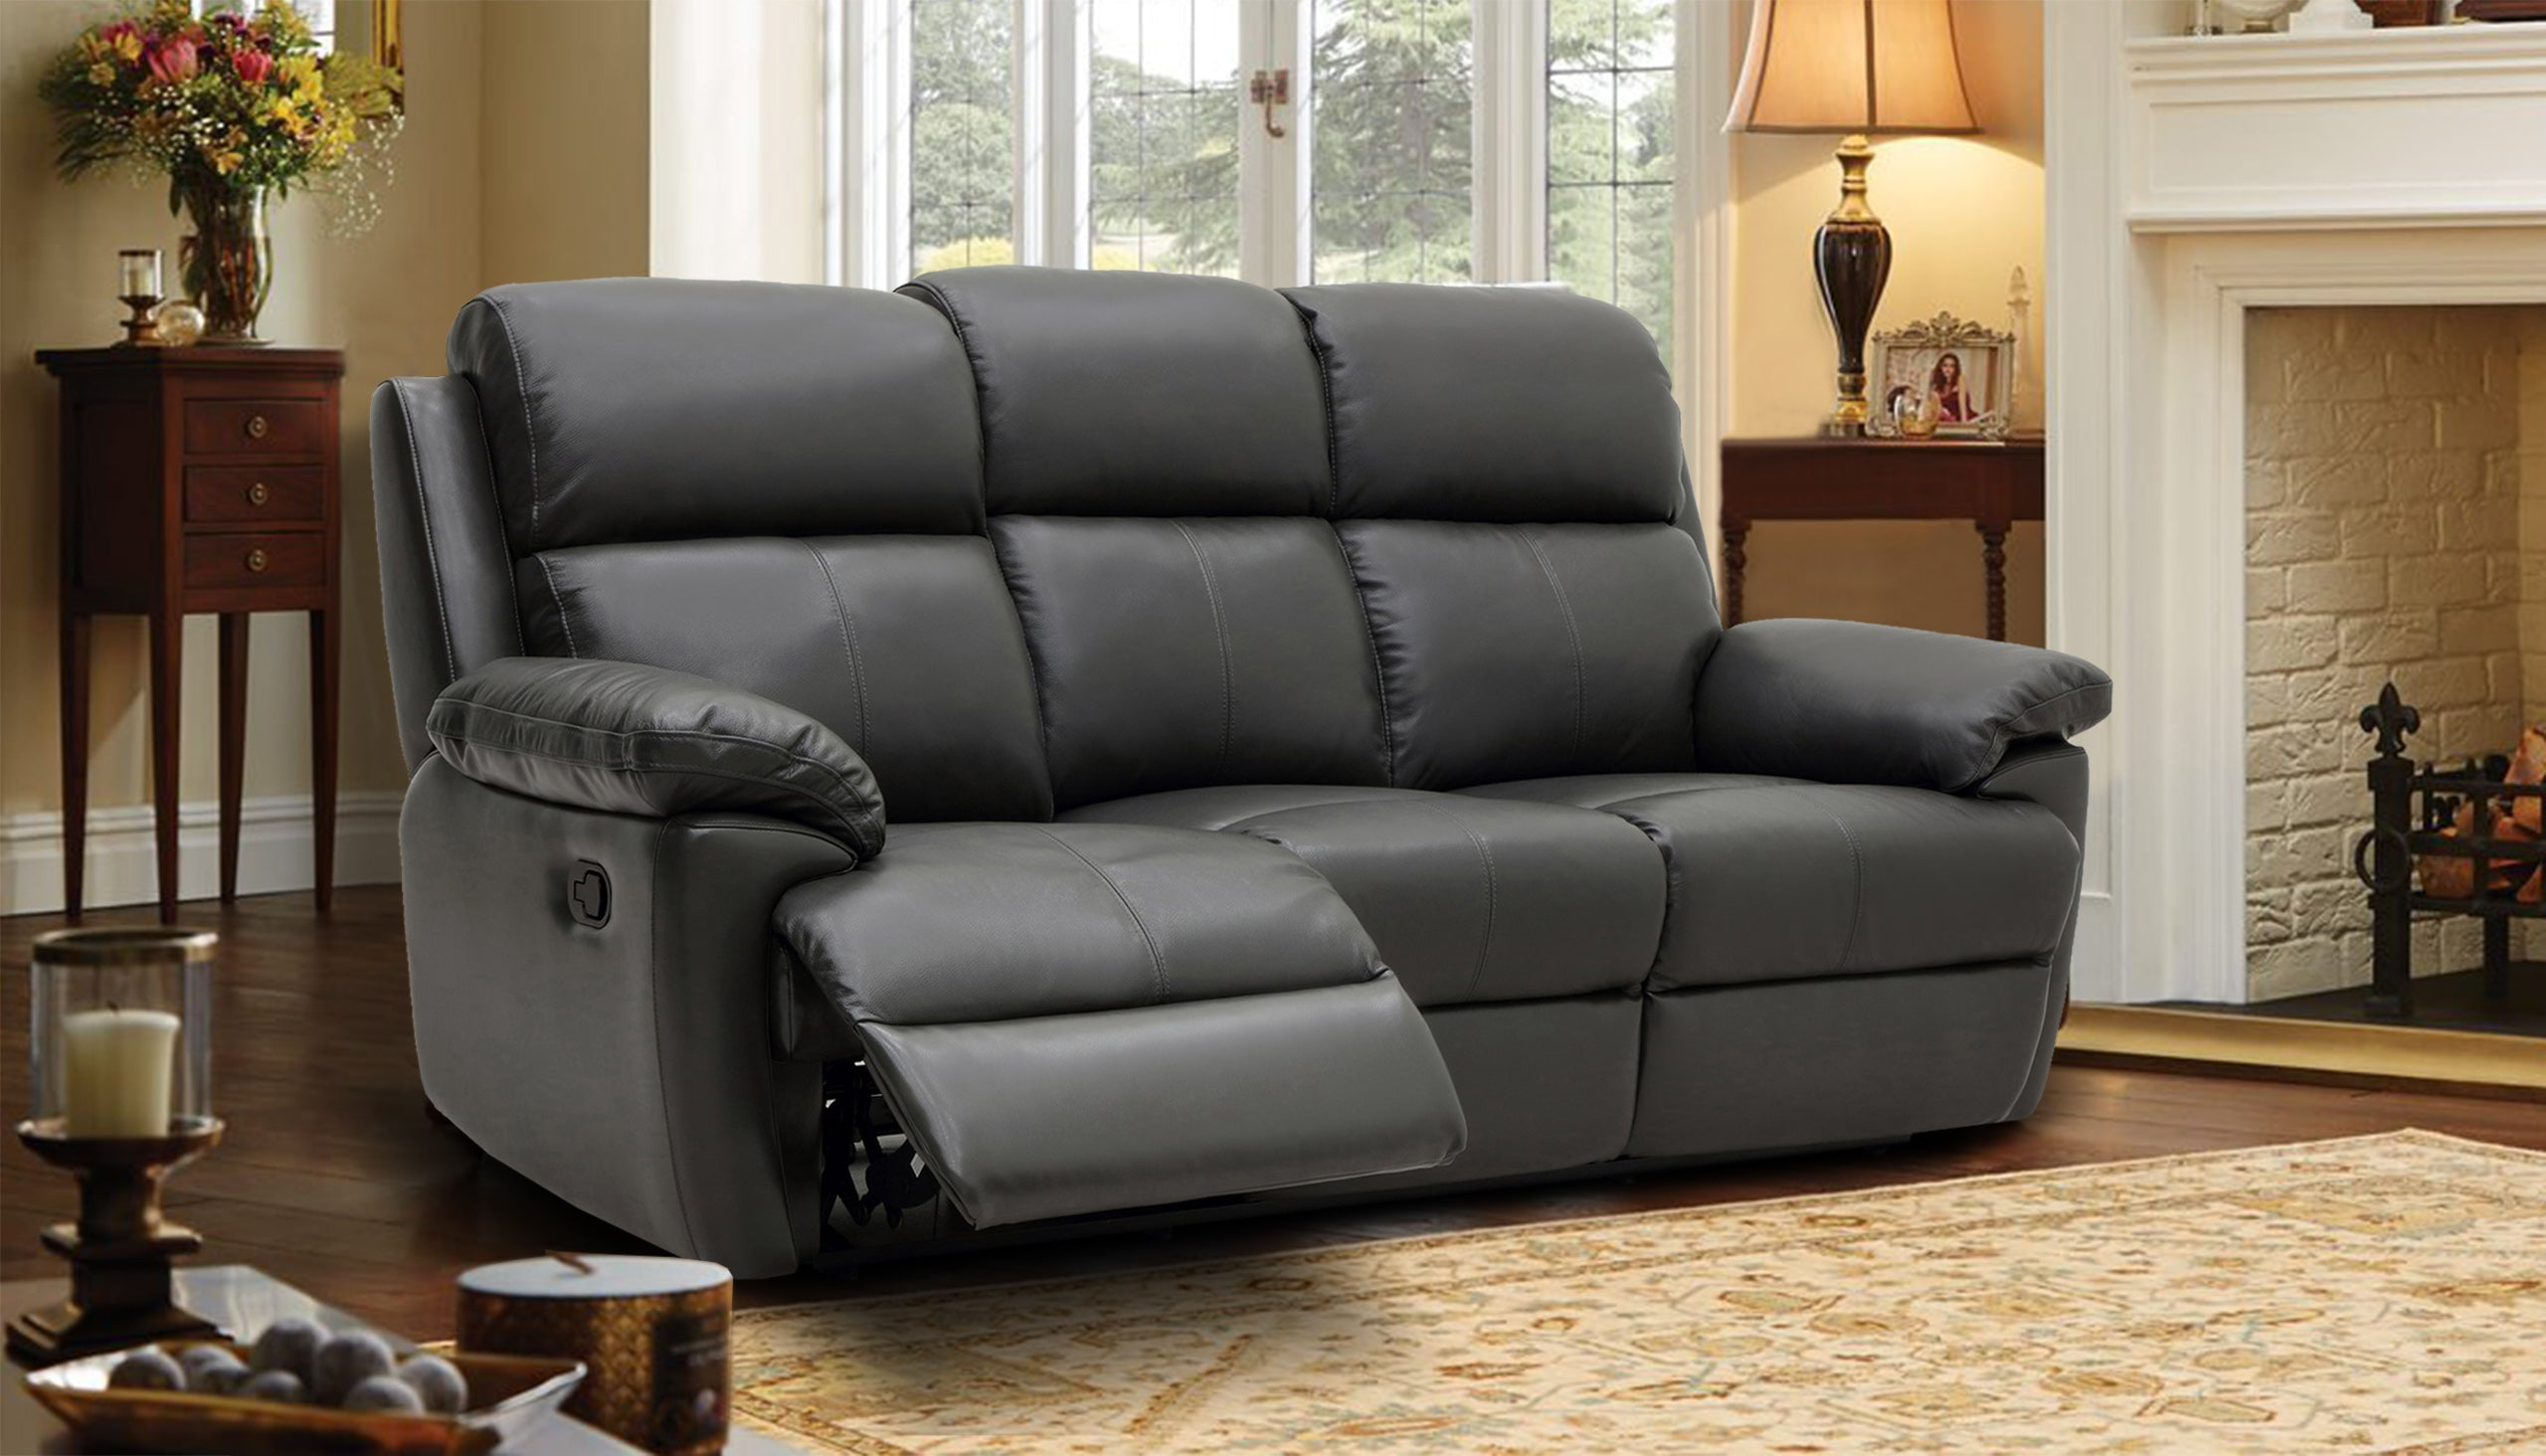 Blair 3 Seater Power Recliner Sofa